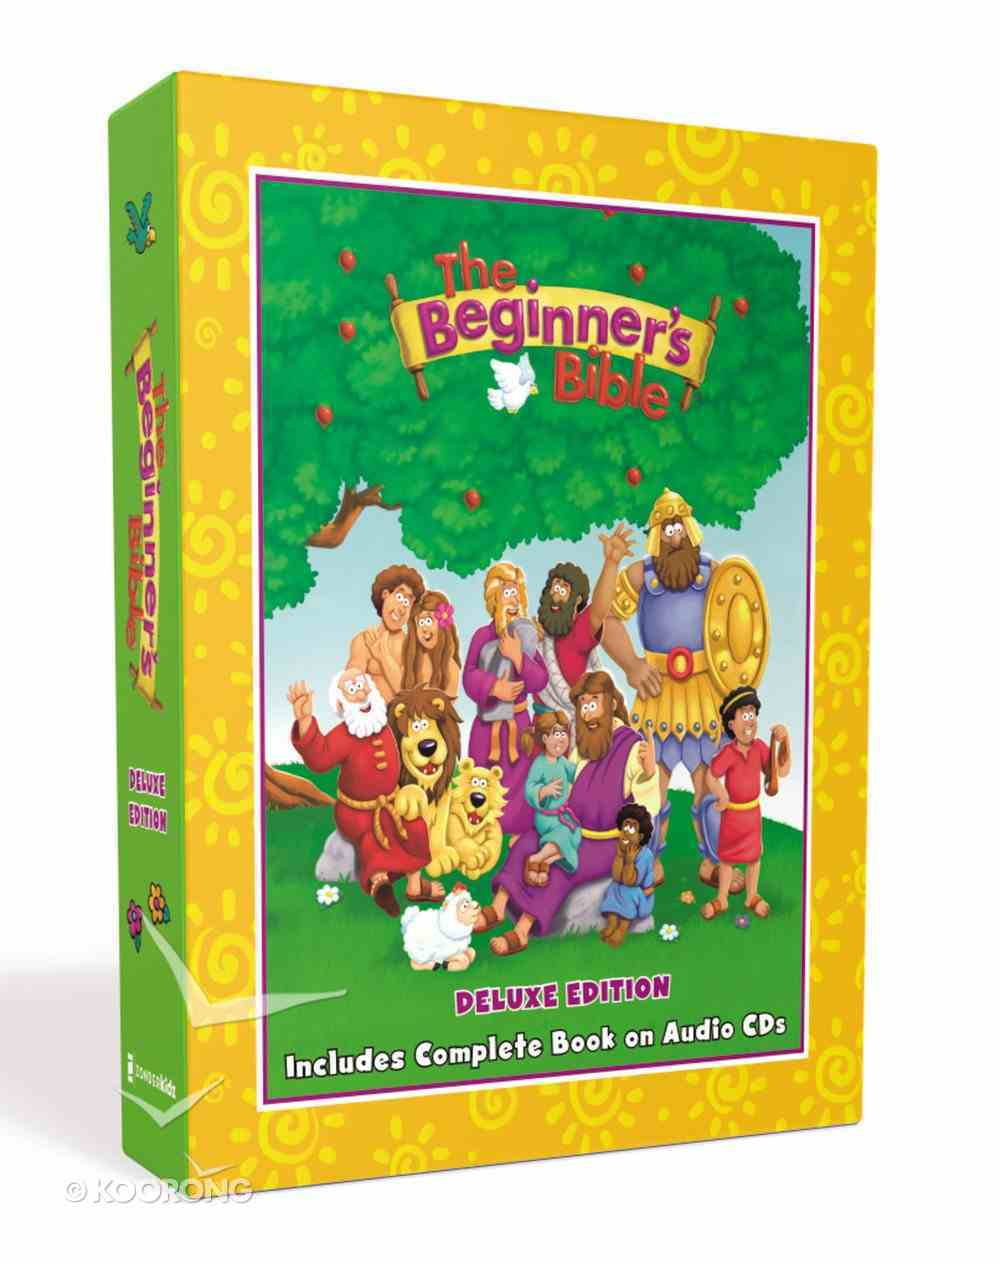 The Beginner's Bible Deluxe Edition (Includes Complete Book on Audio CDS) (Beginner's Bible Series) Pack